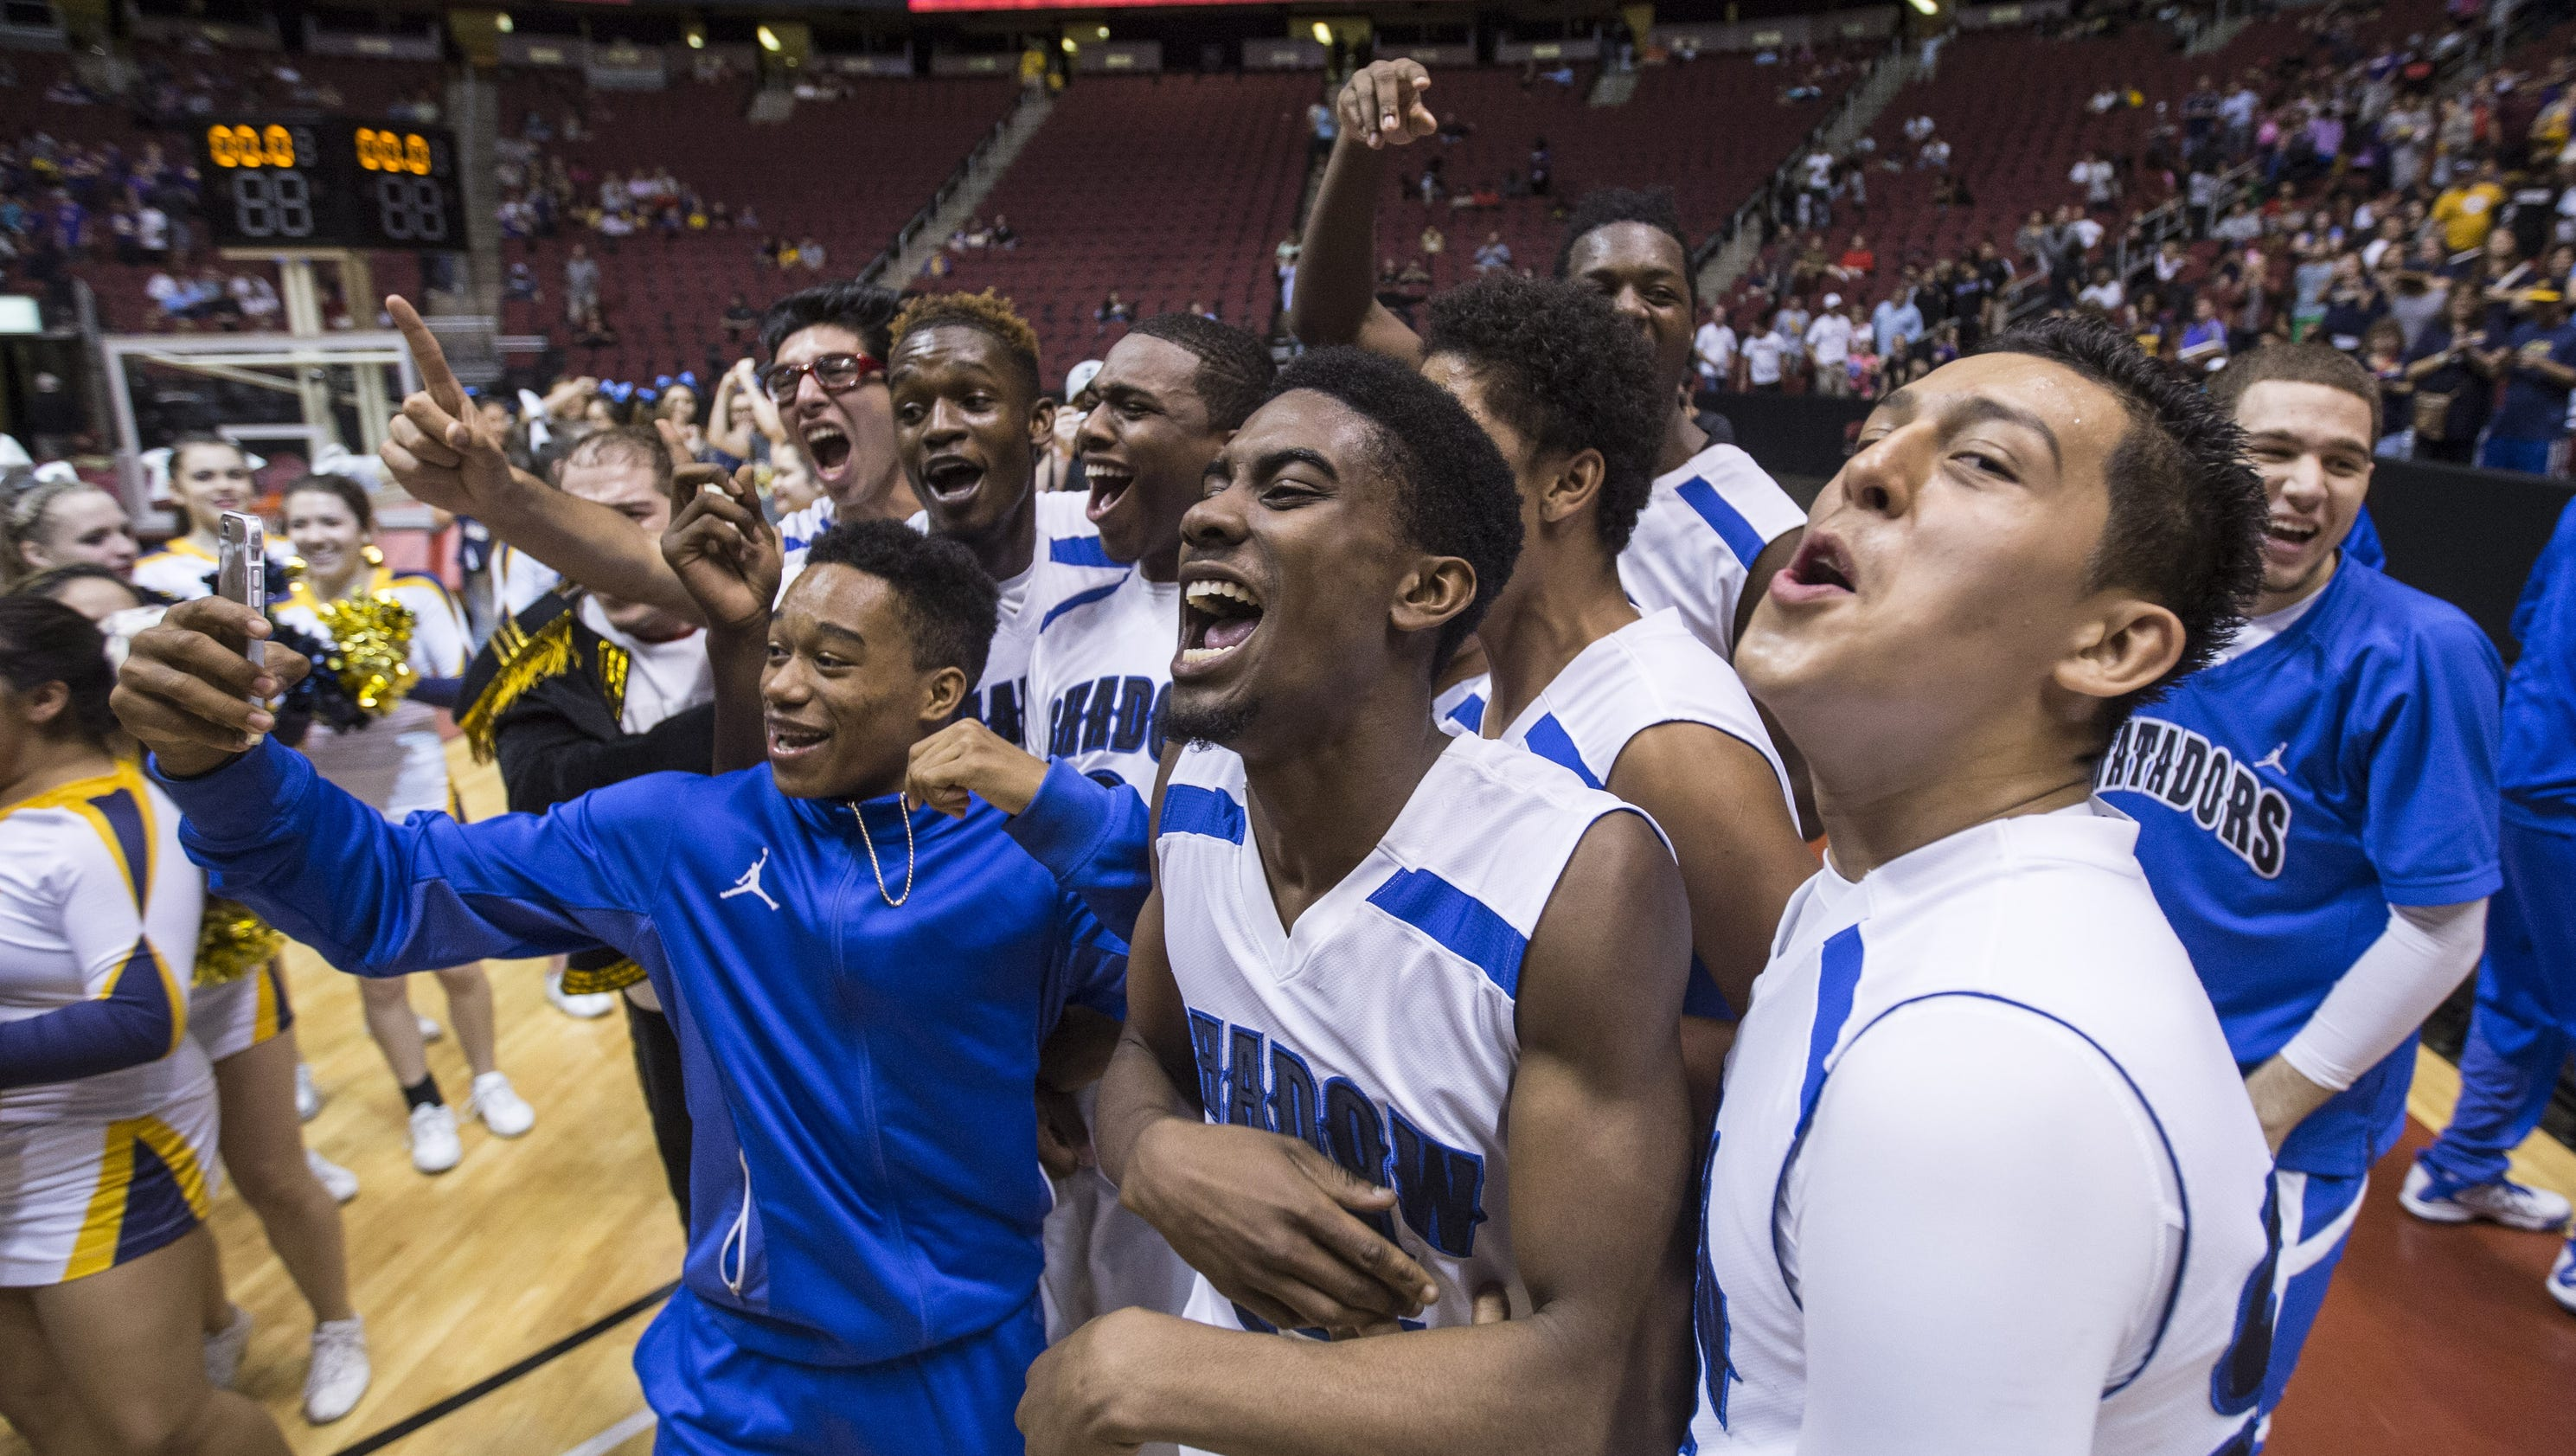 Final Boys Basketball Super 10 Rankings